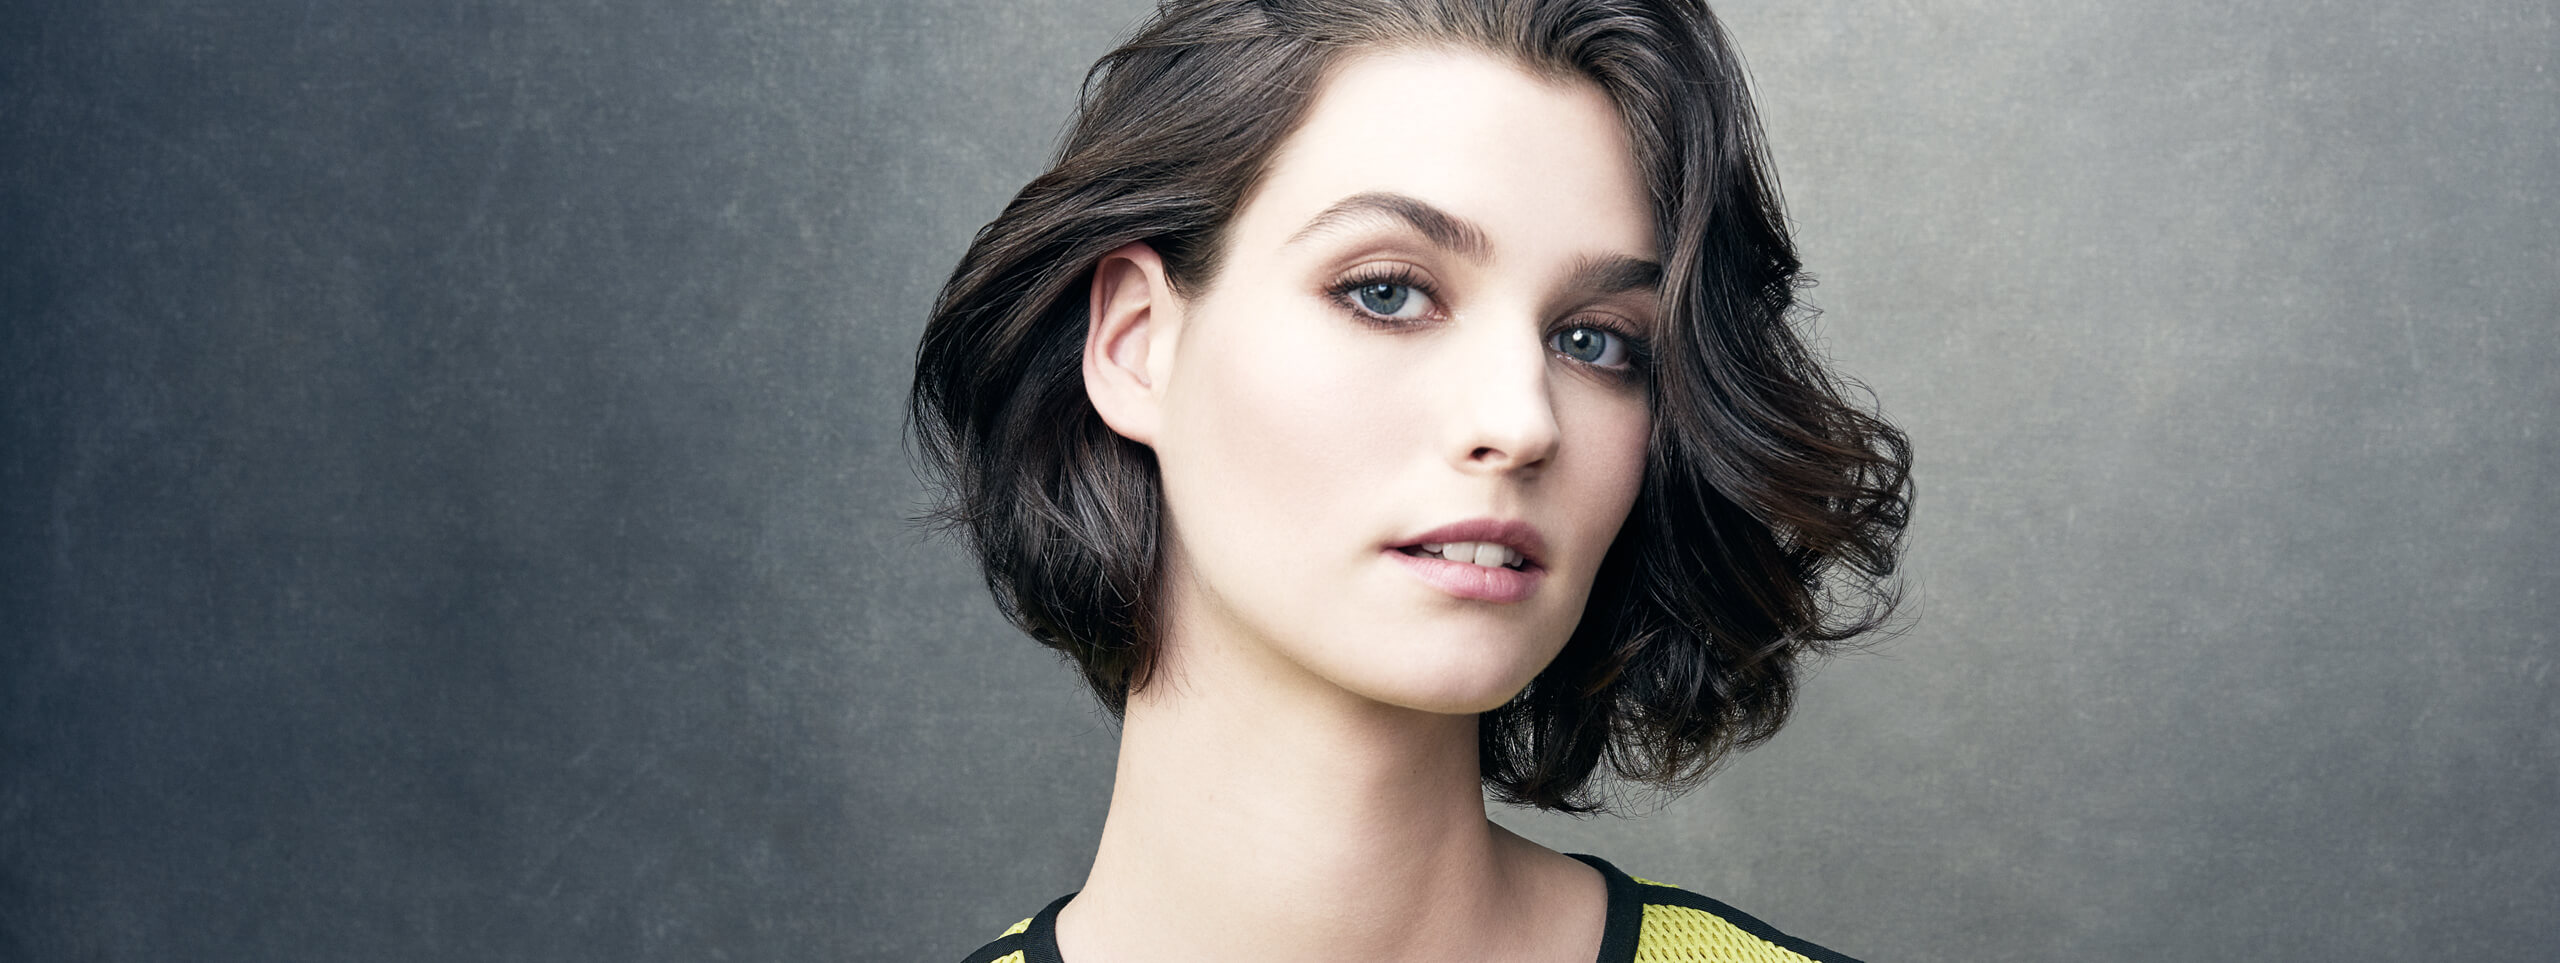 Model with hair swept back in a bob hairstyle